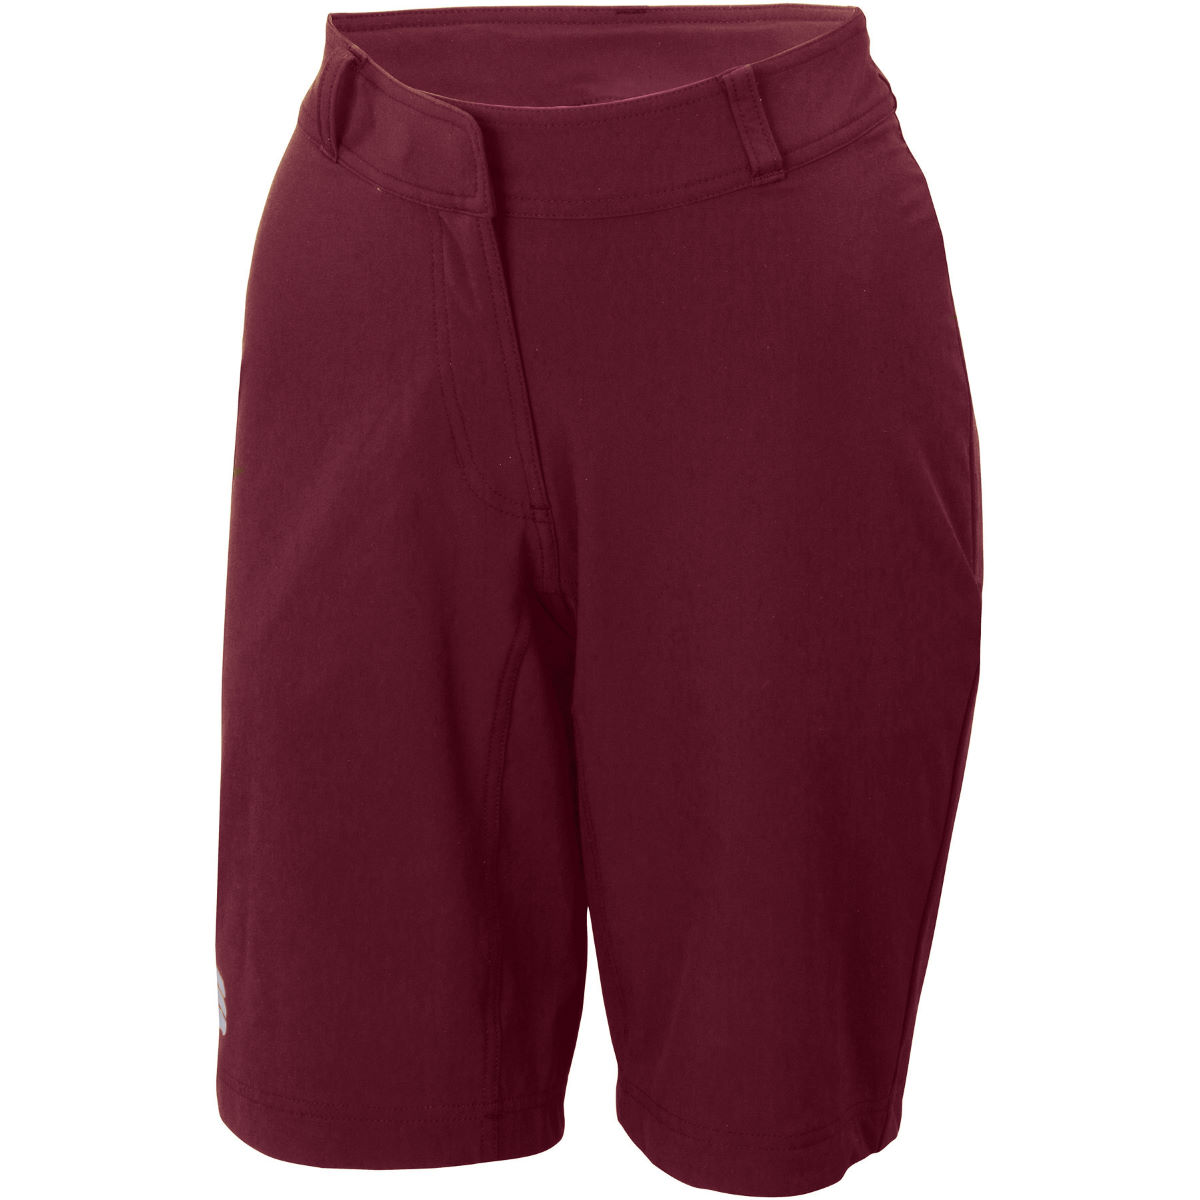 Sportful Womens Giara Over Shorts - M Red Wine  Baggy Shorts